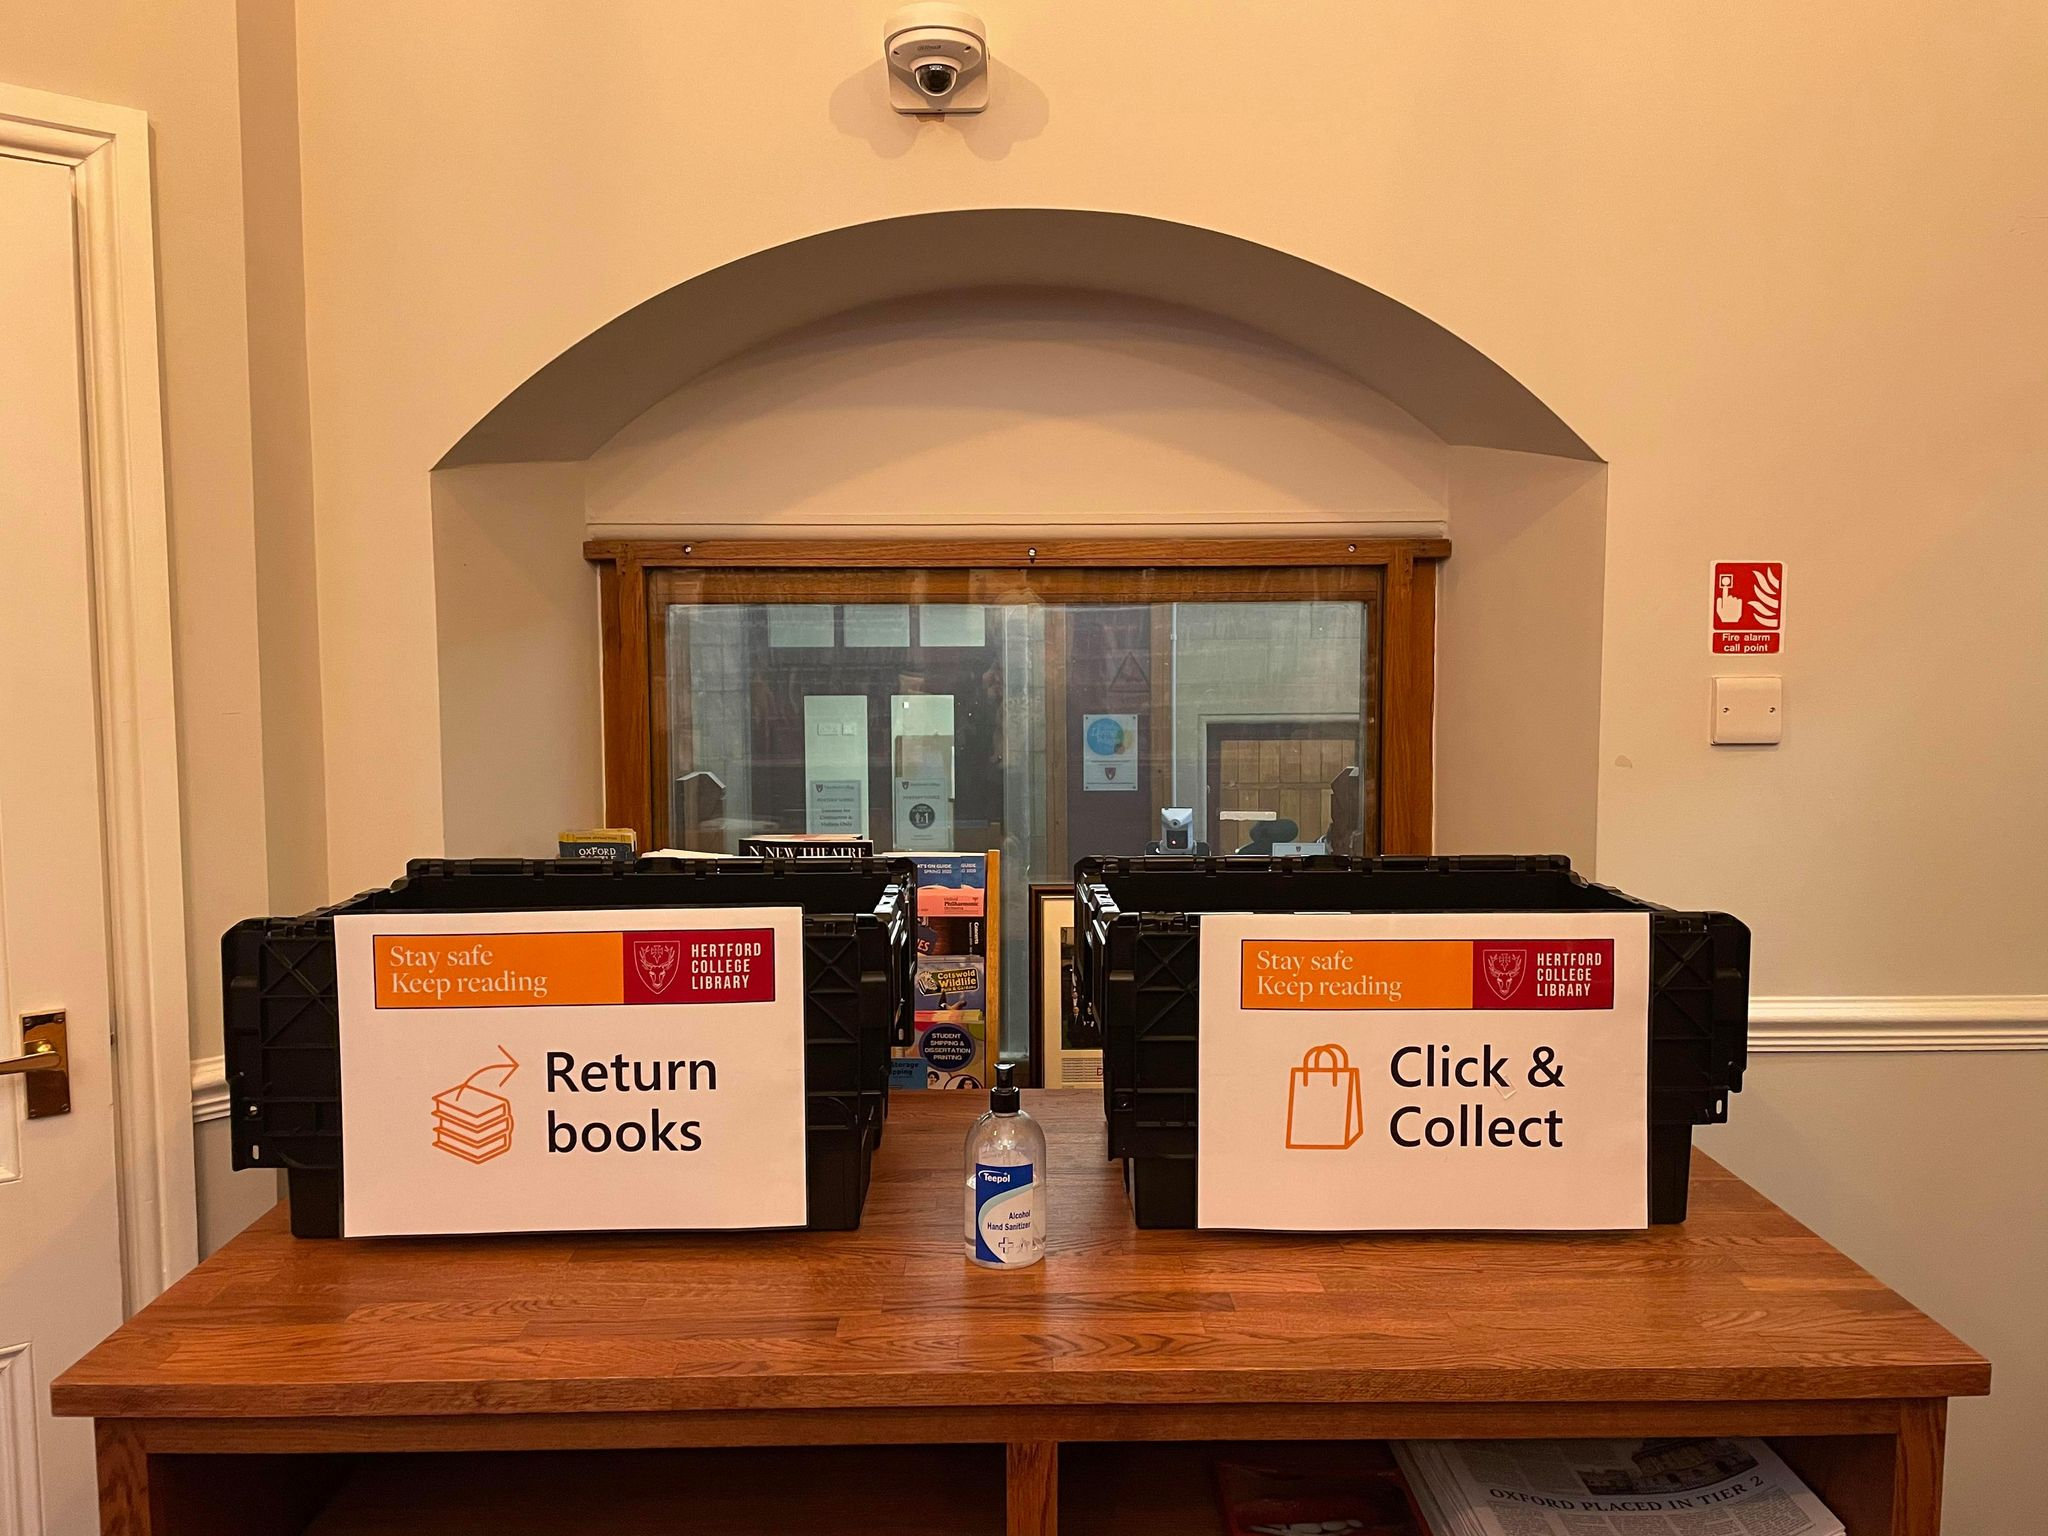 Two black crates in post room for return and collecting library books